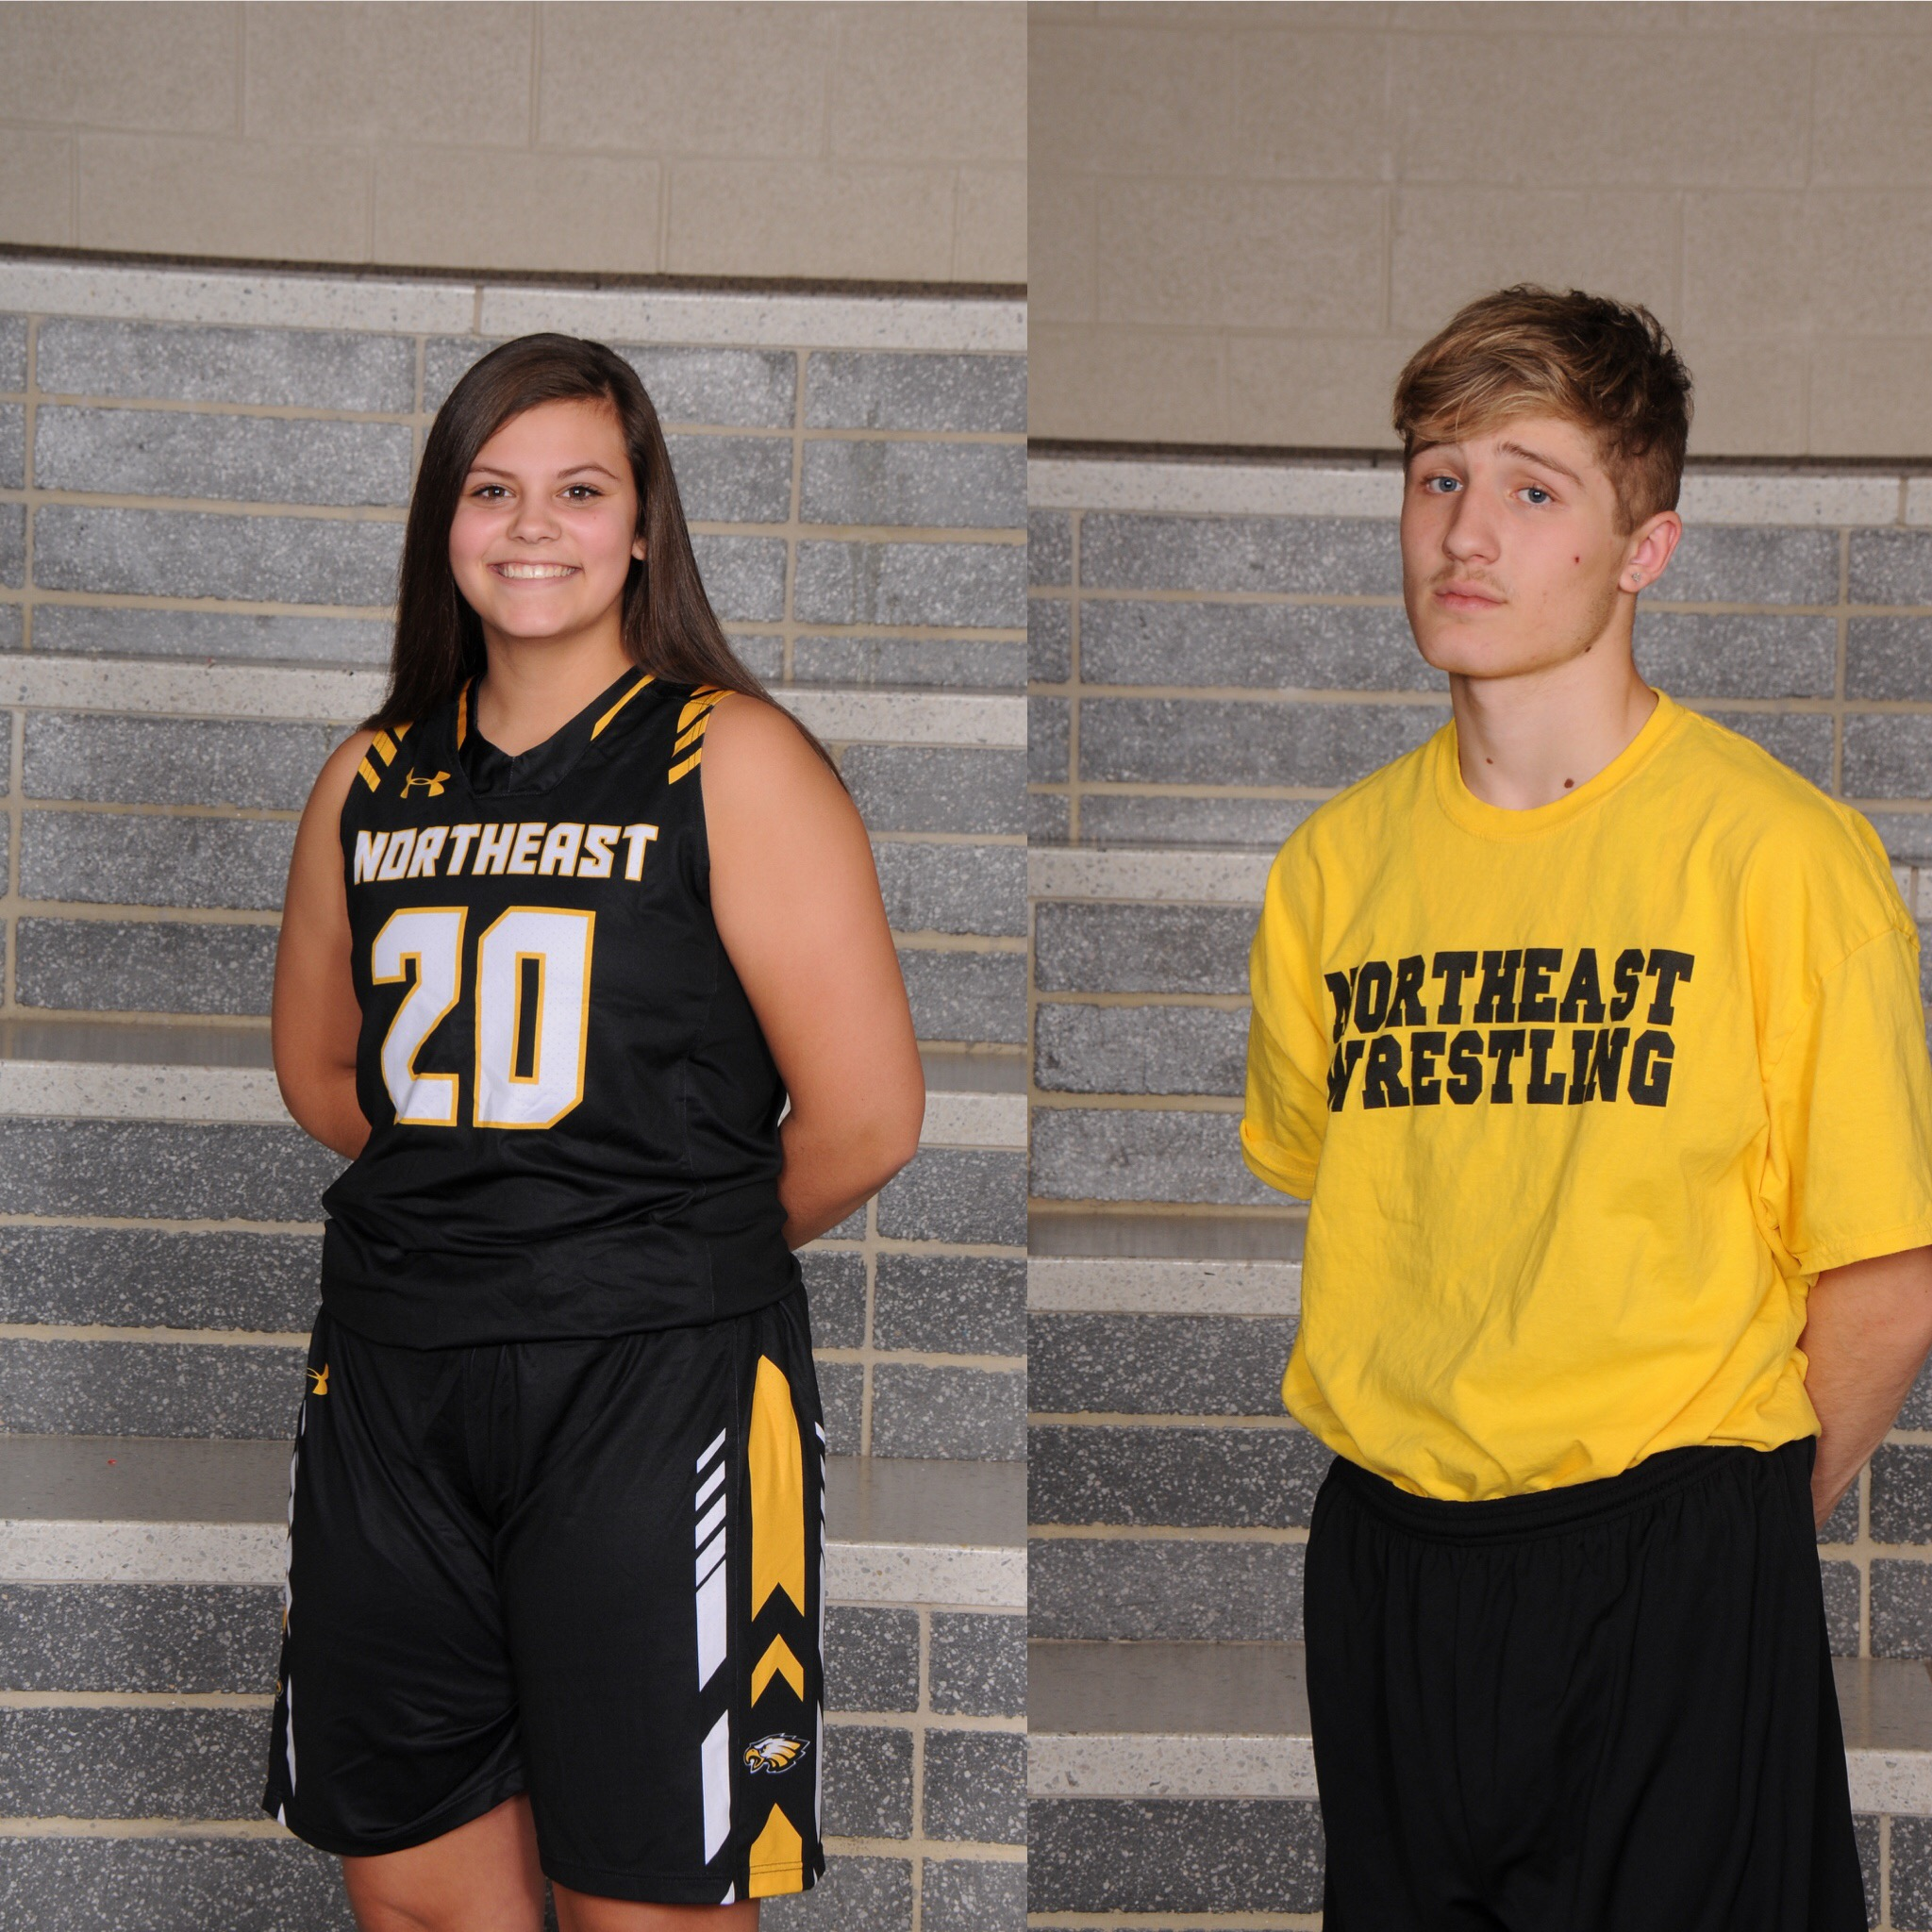 NHS Athletics December Athletes of the Month: Kyle Preston & Ryleigh Nally